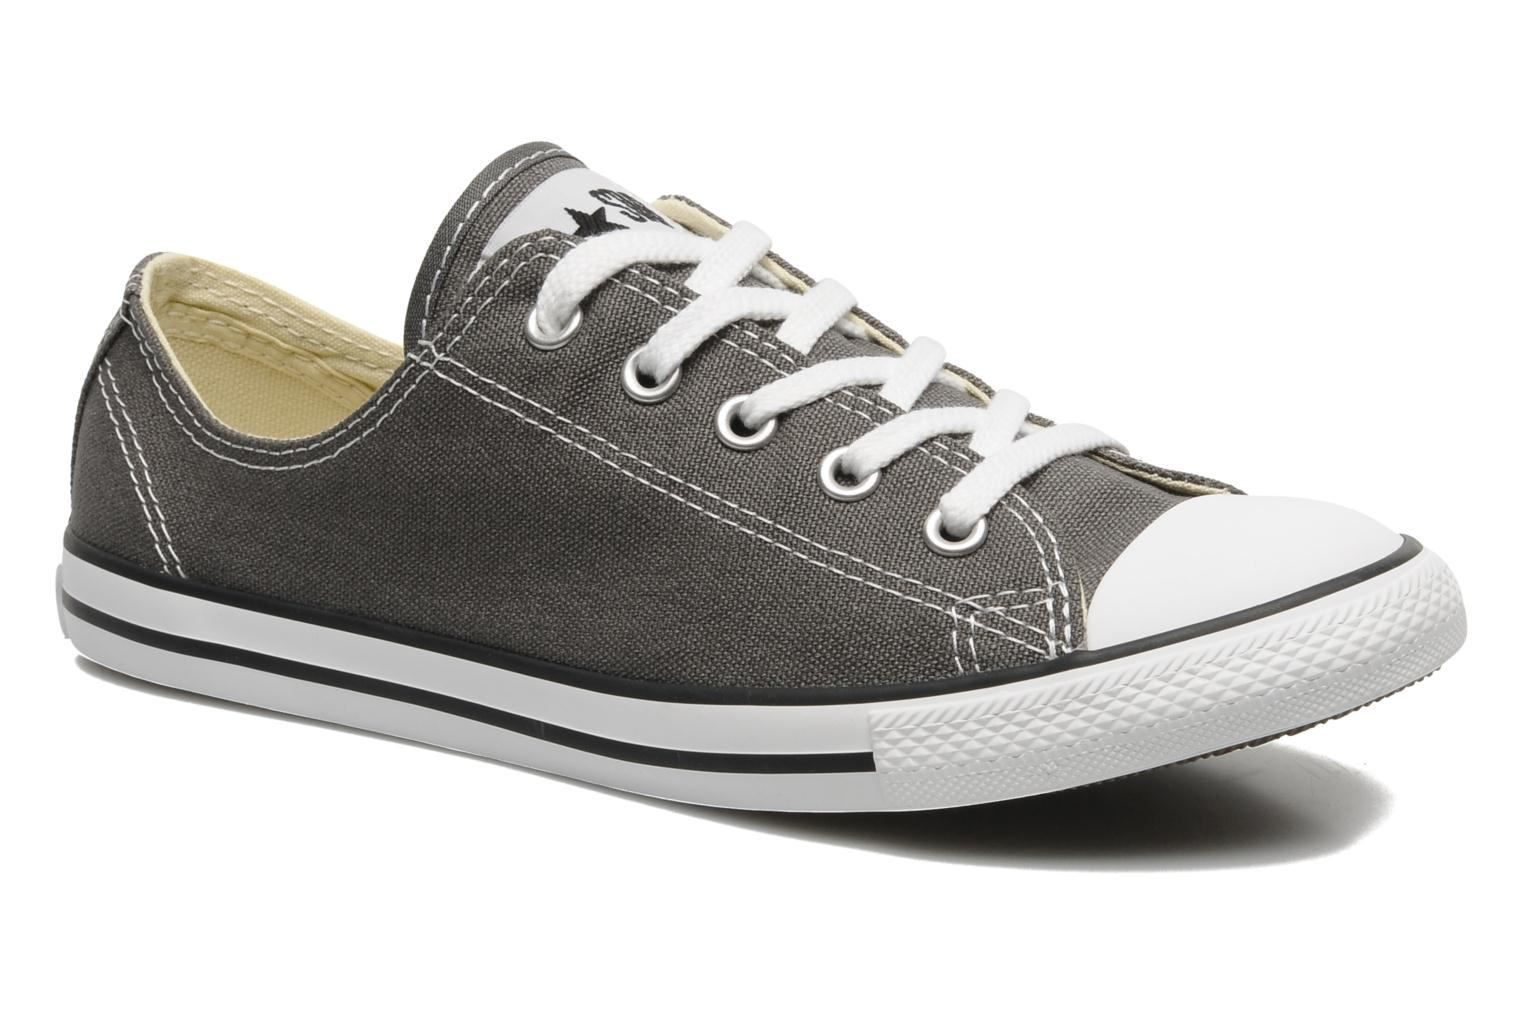 All Star Dainty Canvas Ox W by ConverseRebajas - 10%